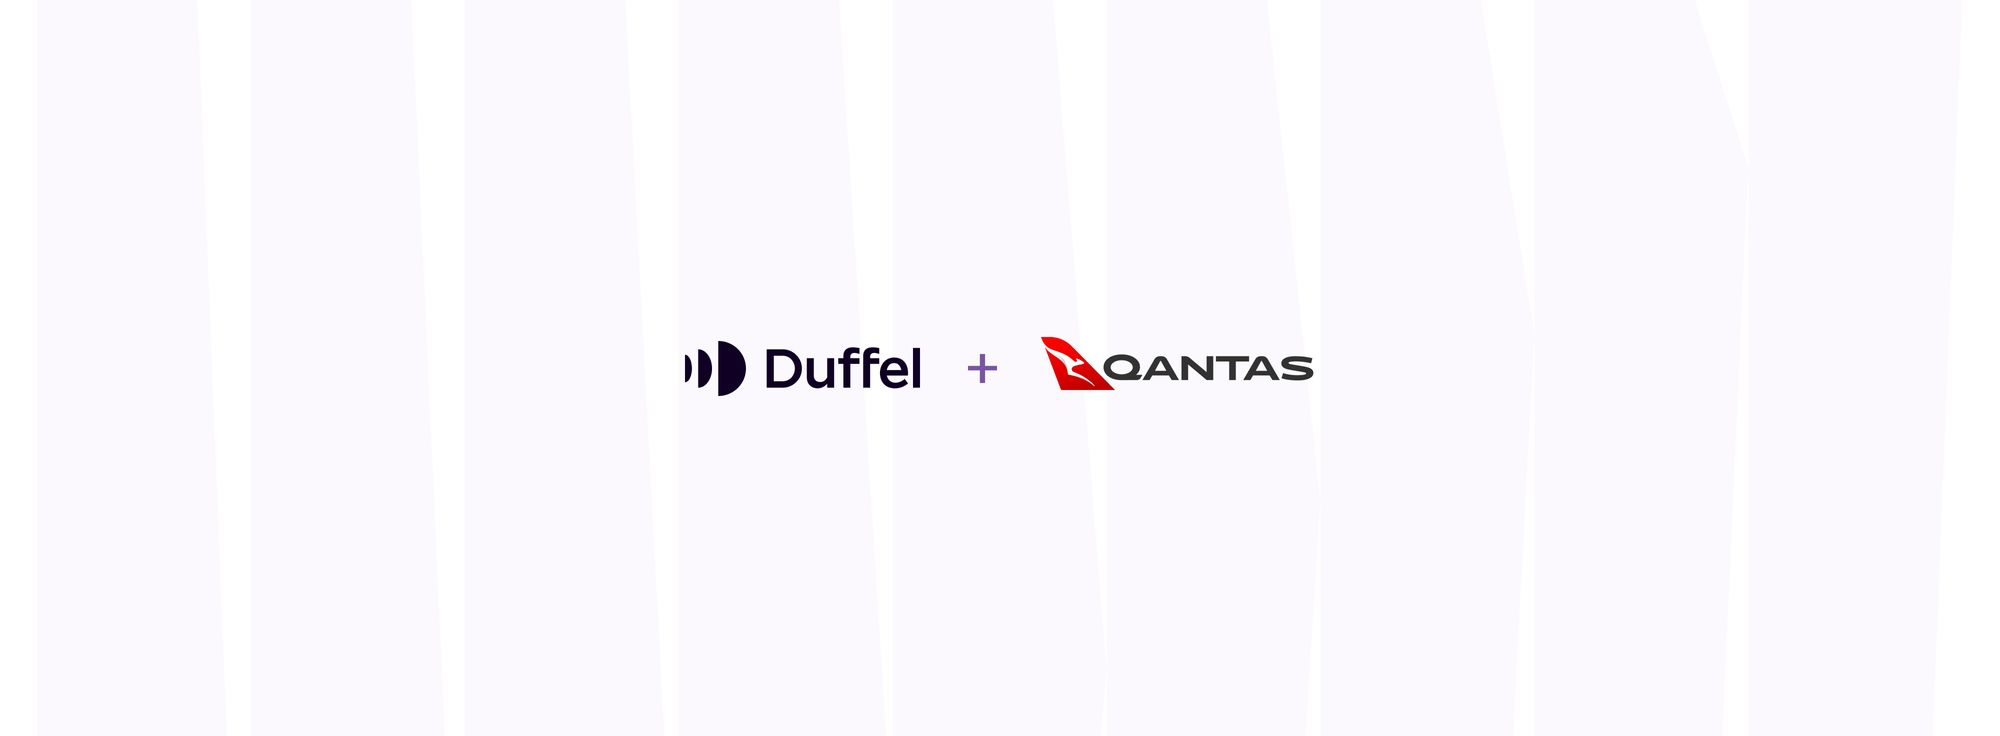 Duffel expands further as a new partnership with Qantas comes online